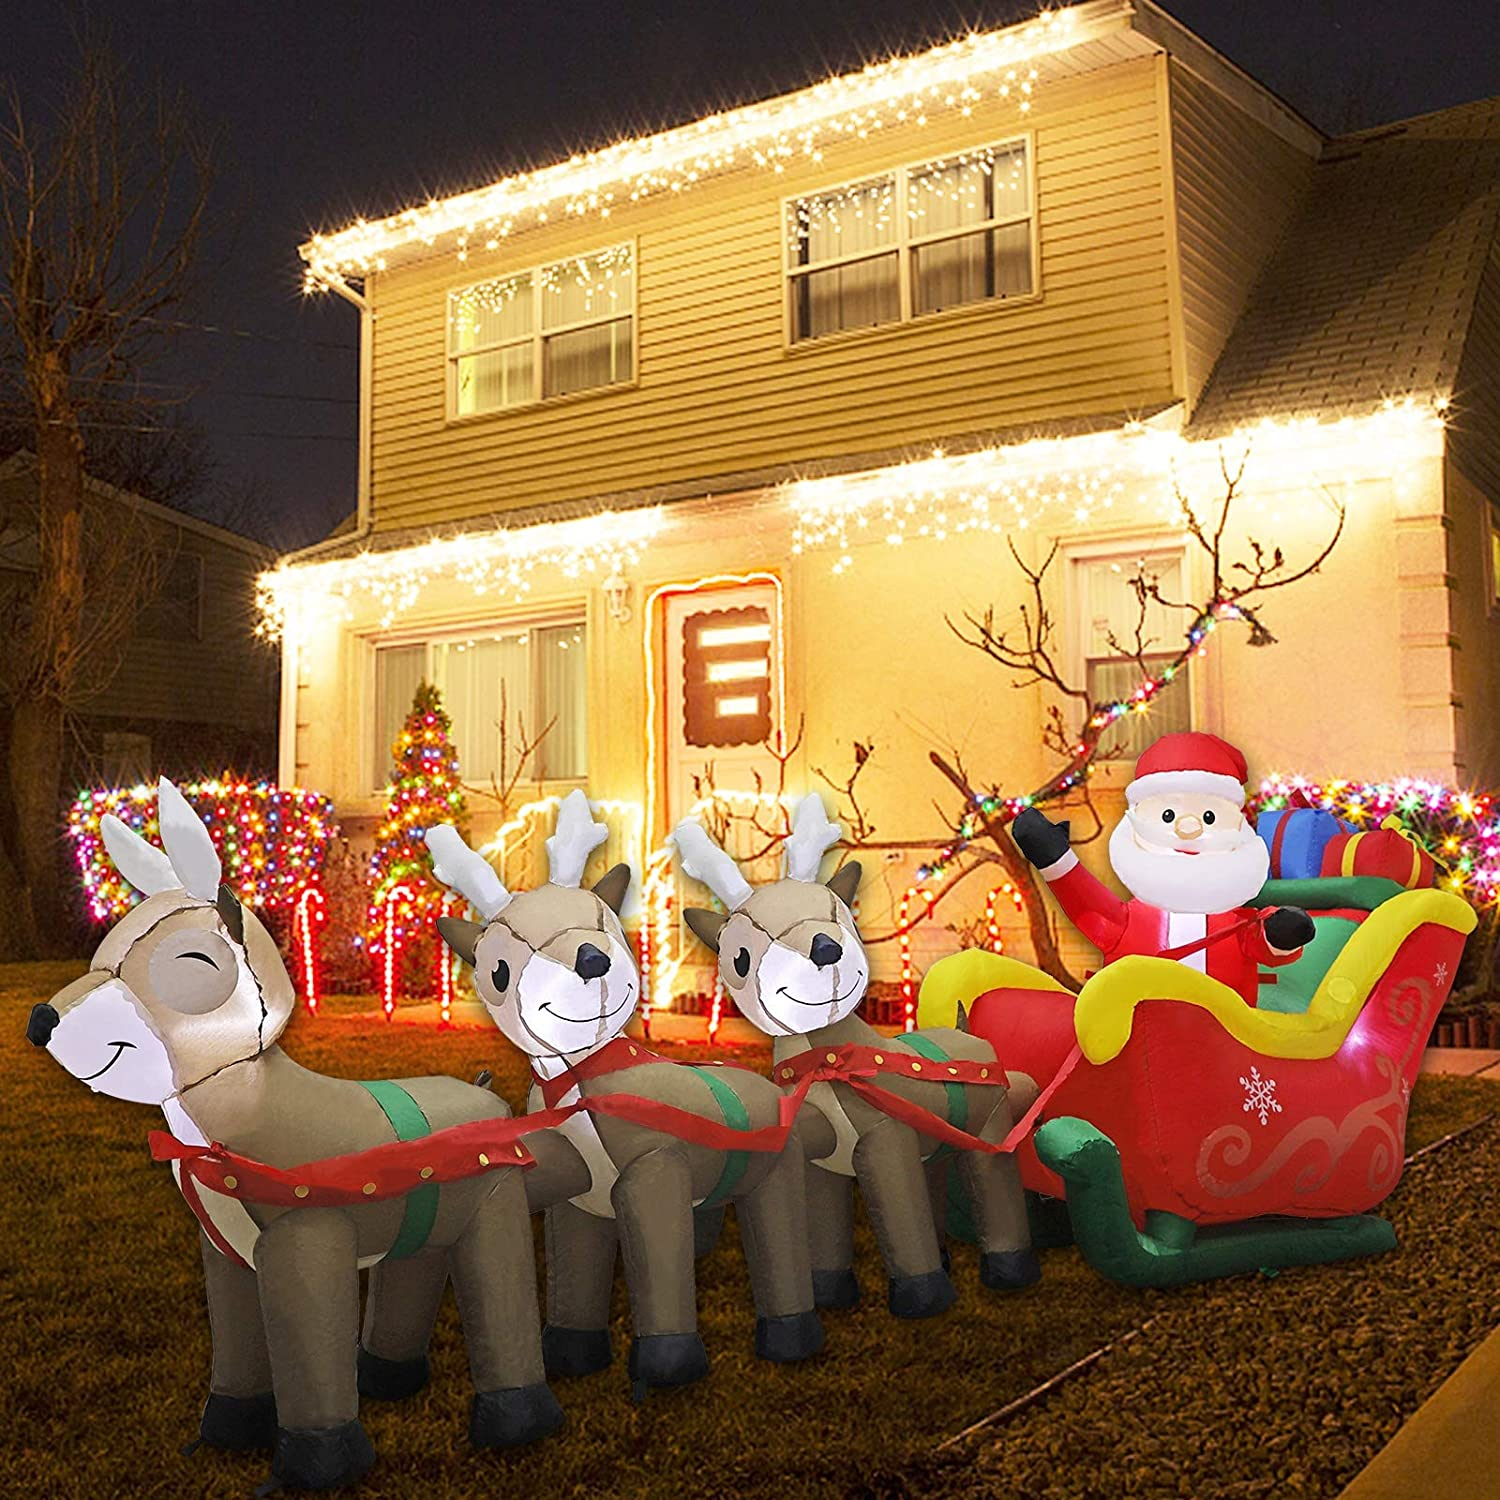 MorTime 9.5 FT Christmas Inflatable Santa Claus on Sleigh Pulled by Three Reindeers with Gift Boxes, Blow up Airblown Lighted Xmas Yard Decor with LED Lights for Christmas Outdoor Decorations (9.5FT)